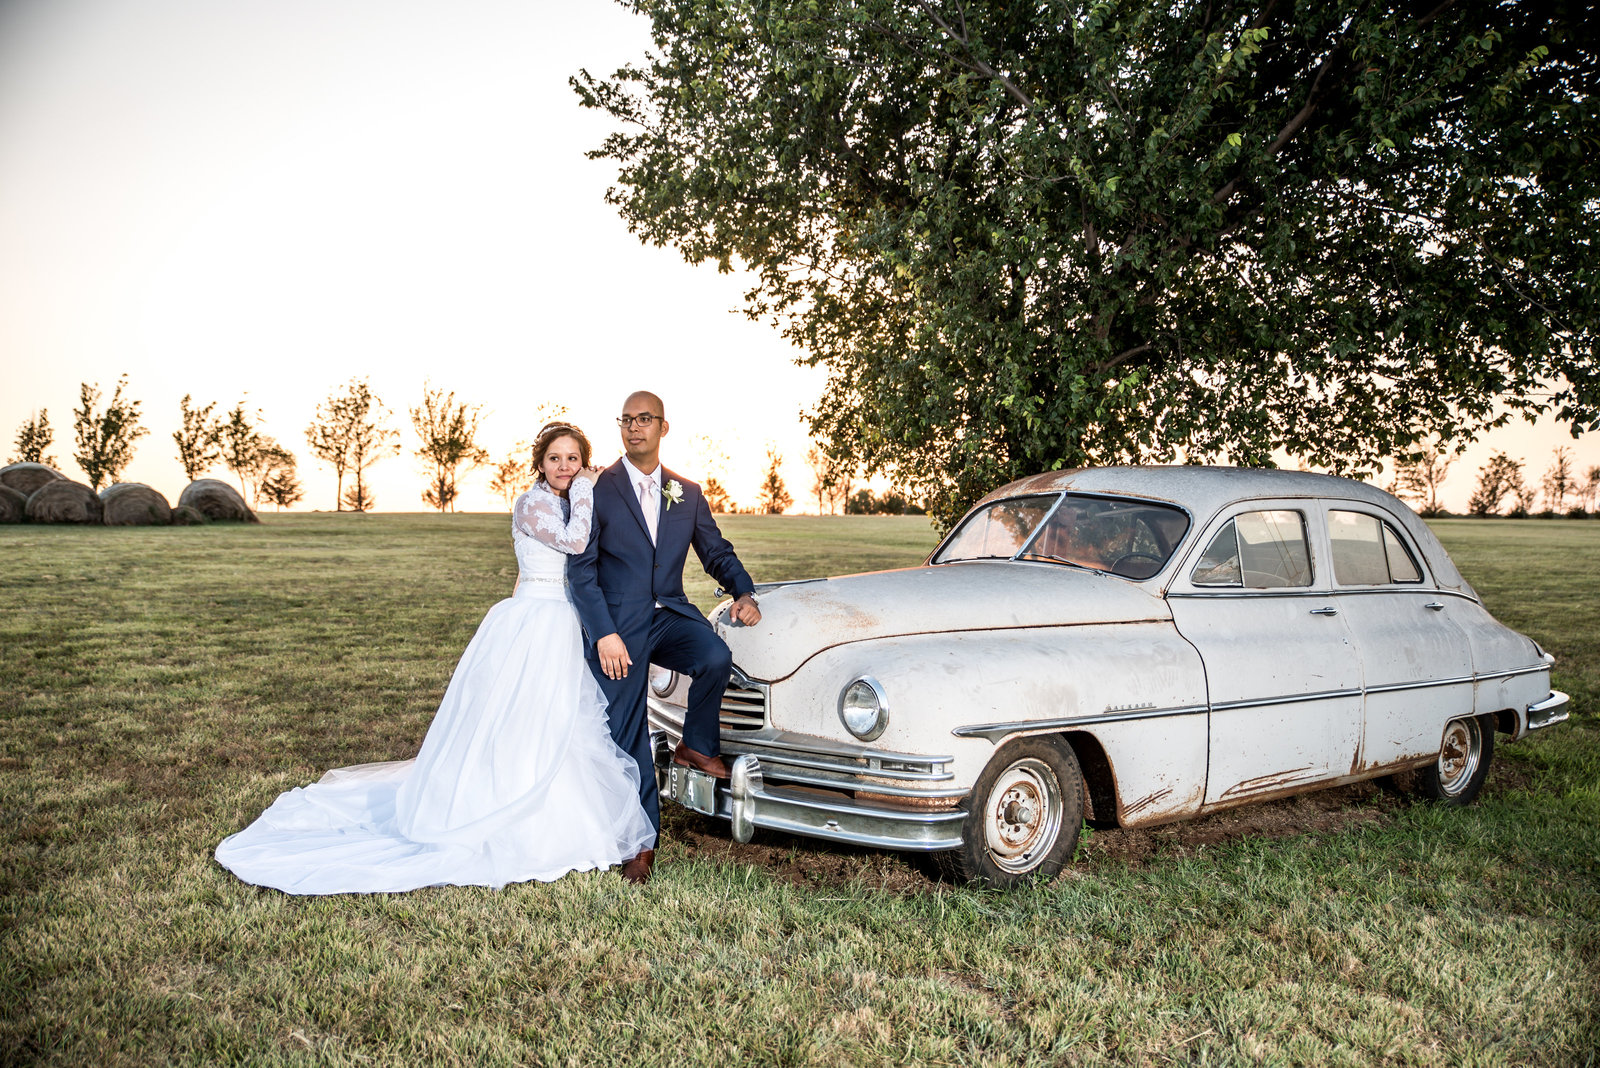 Southwind-hills-wedding-405-brides-photographer